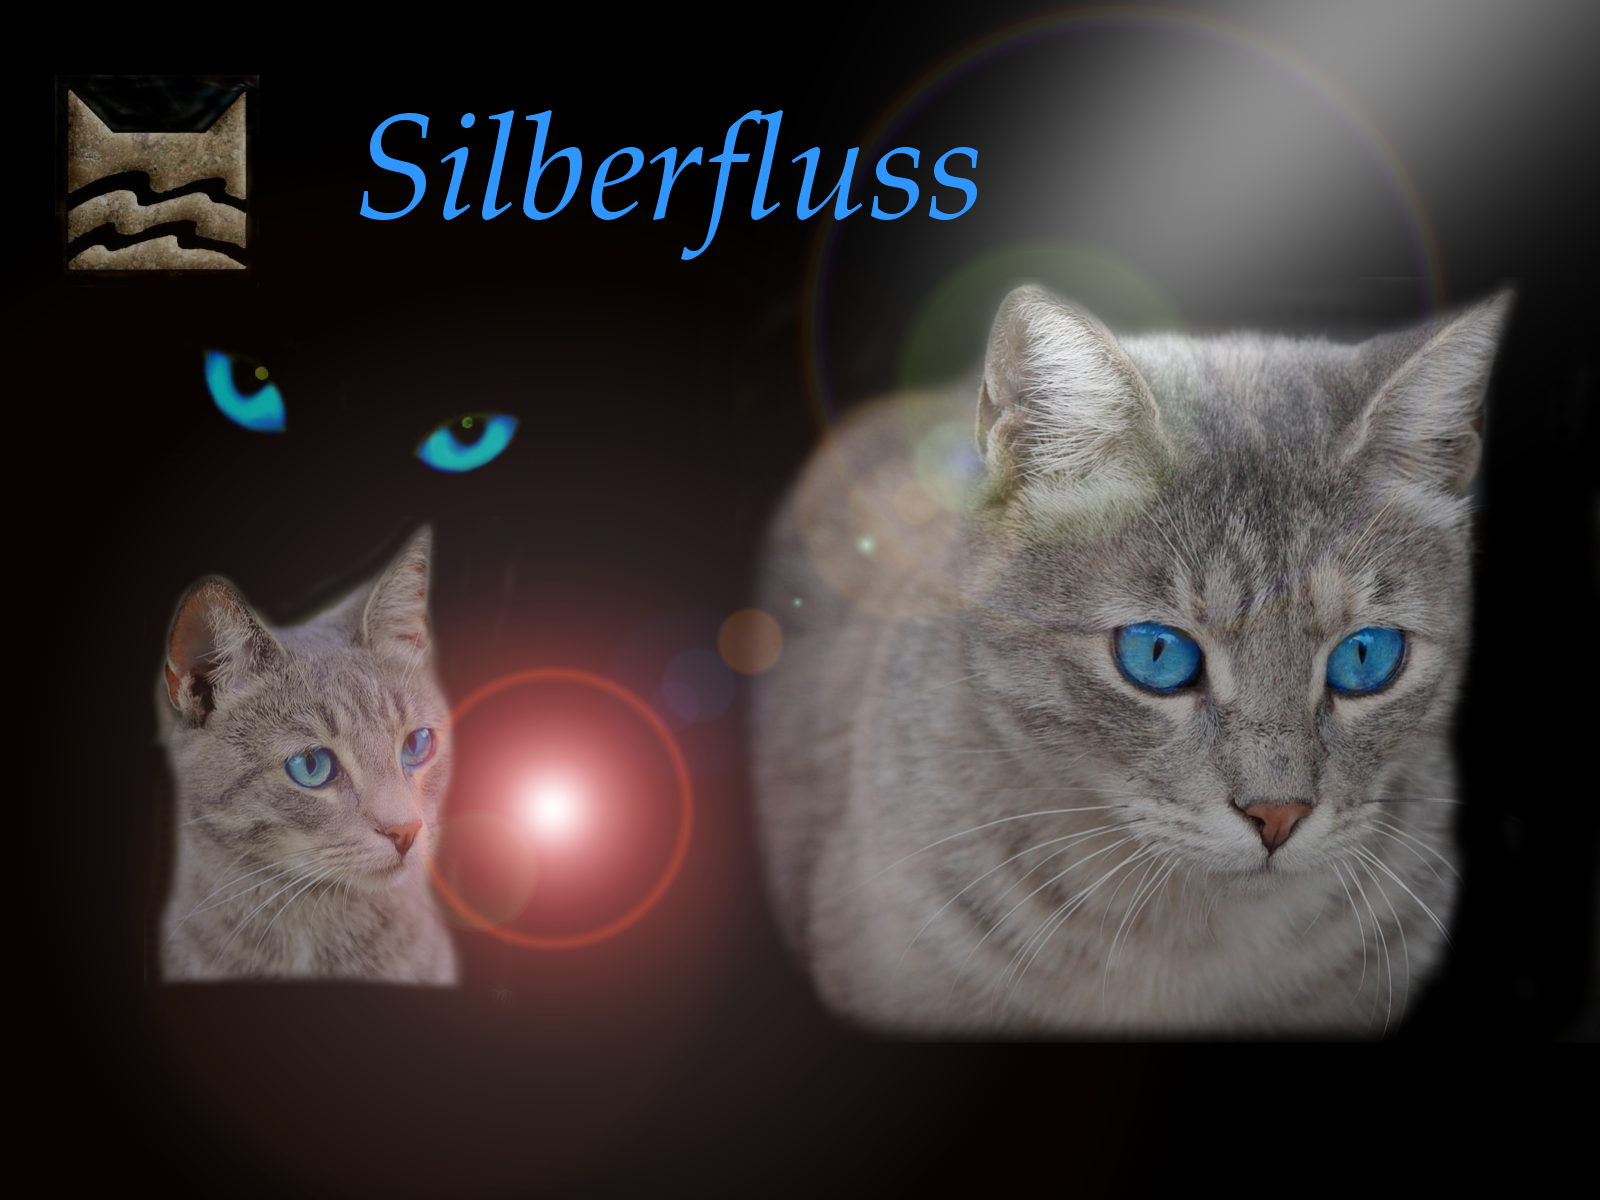 bild silberfluss warrior cats wiki fandom powered by wikia. Black Bedroom Furniture Sets. Home Design Ideas